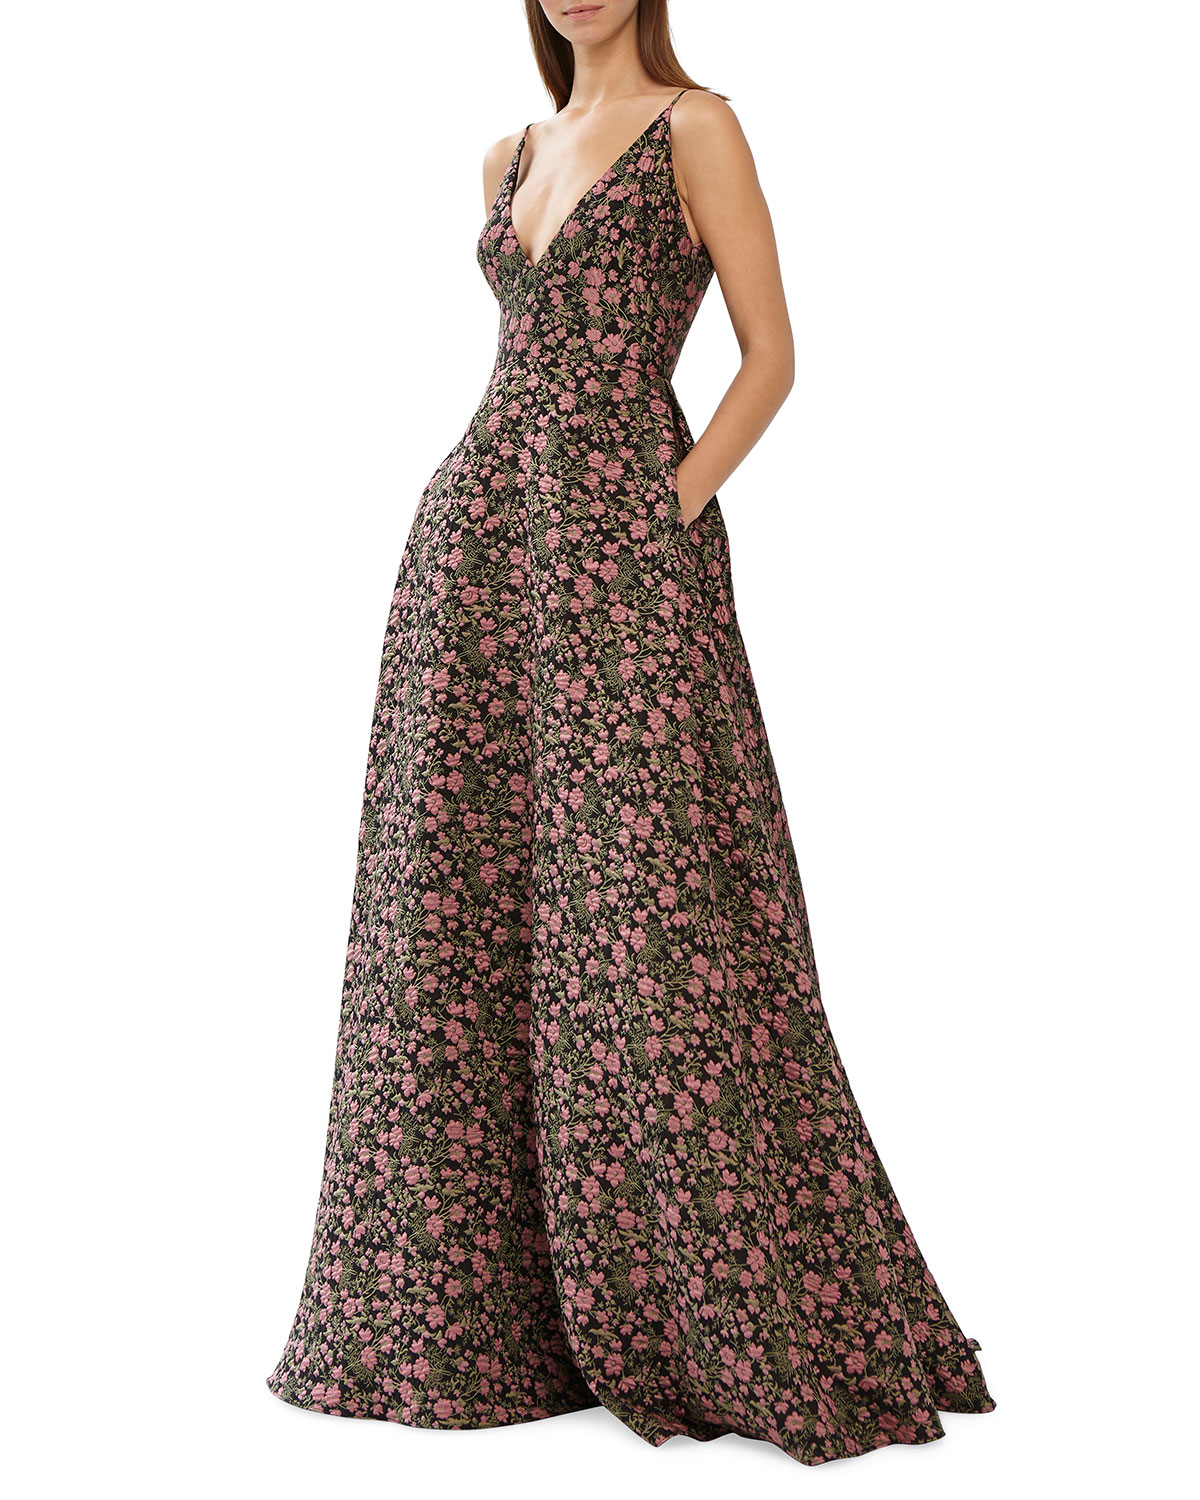 0f399a276ad2 ML Monique Lhuillier Sleeveless V-Neck Floral Jacquard Ball Gown w/  Pockets. Neiman Marcus